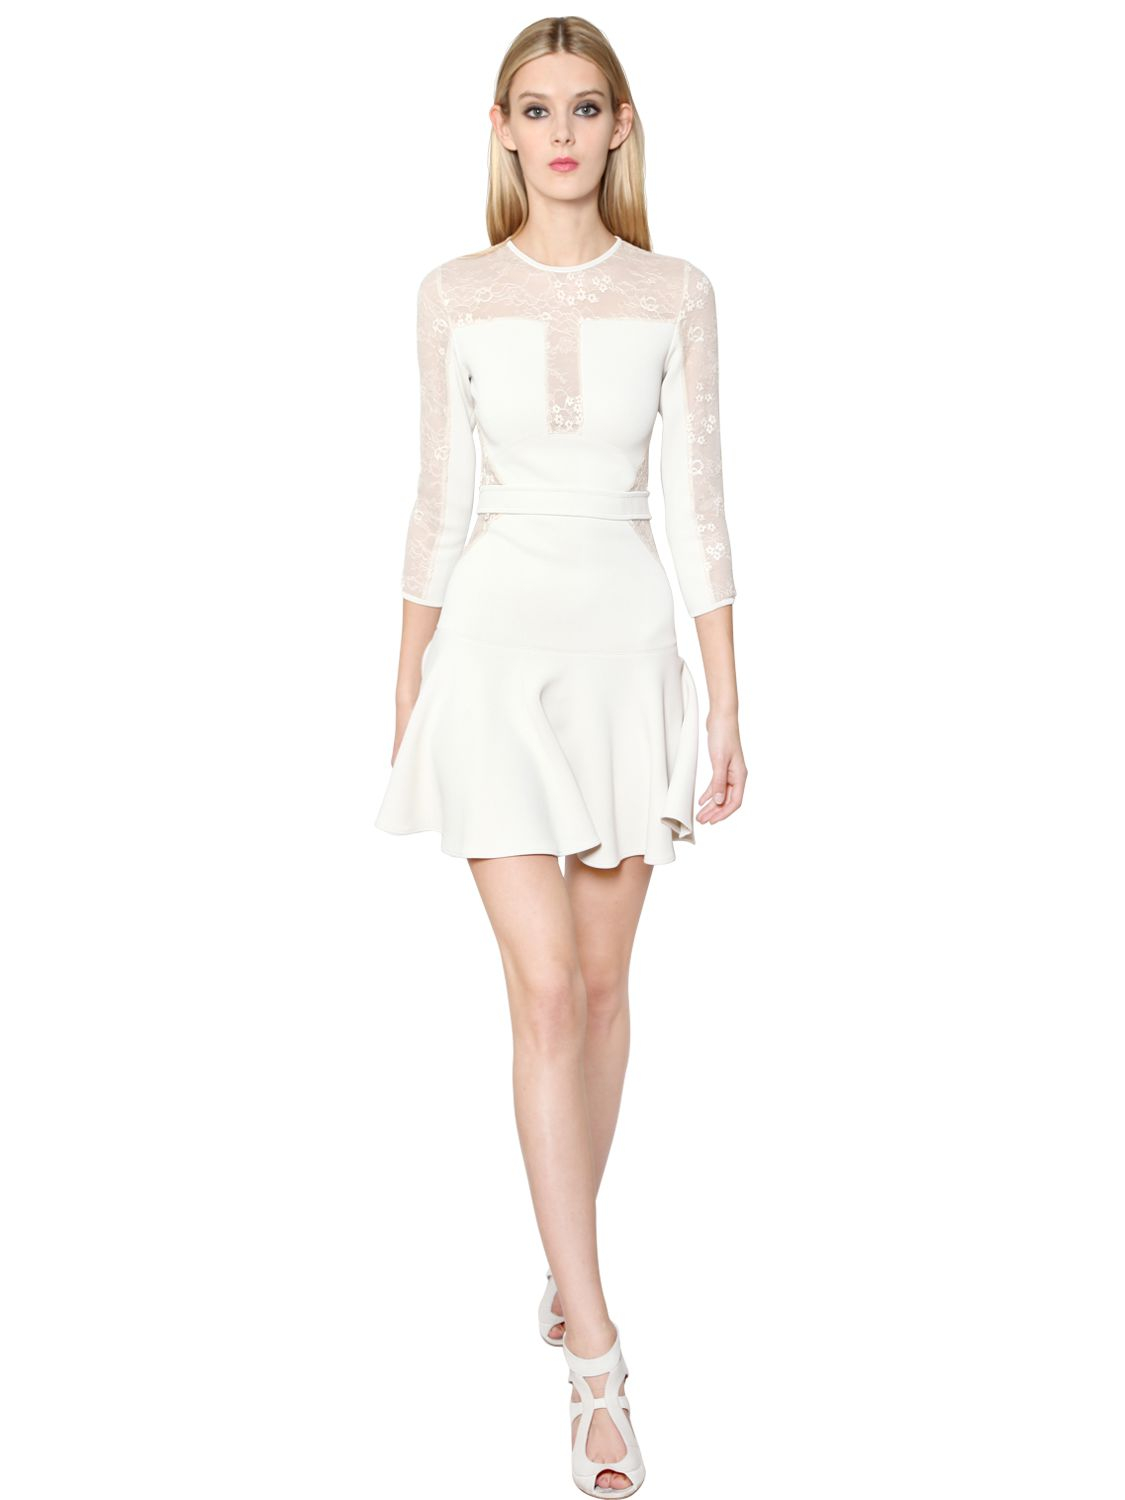 Lyst - Elie Saab Jasmine Knit and Lace Dress in White